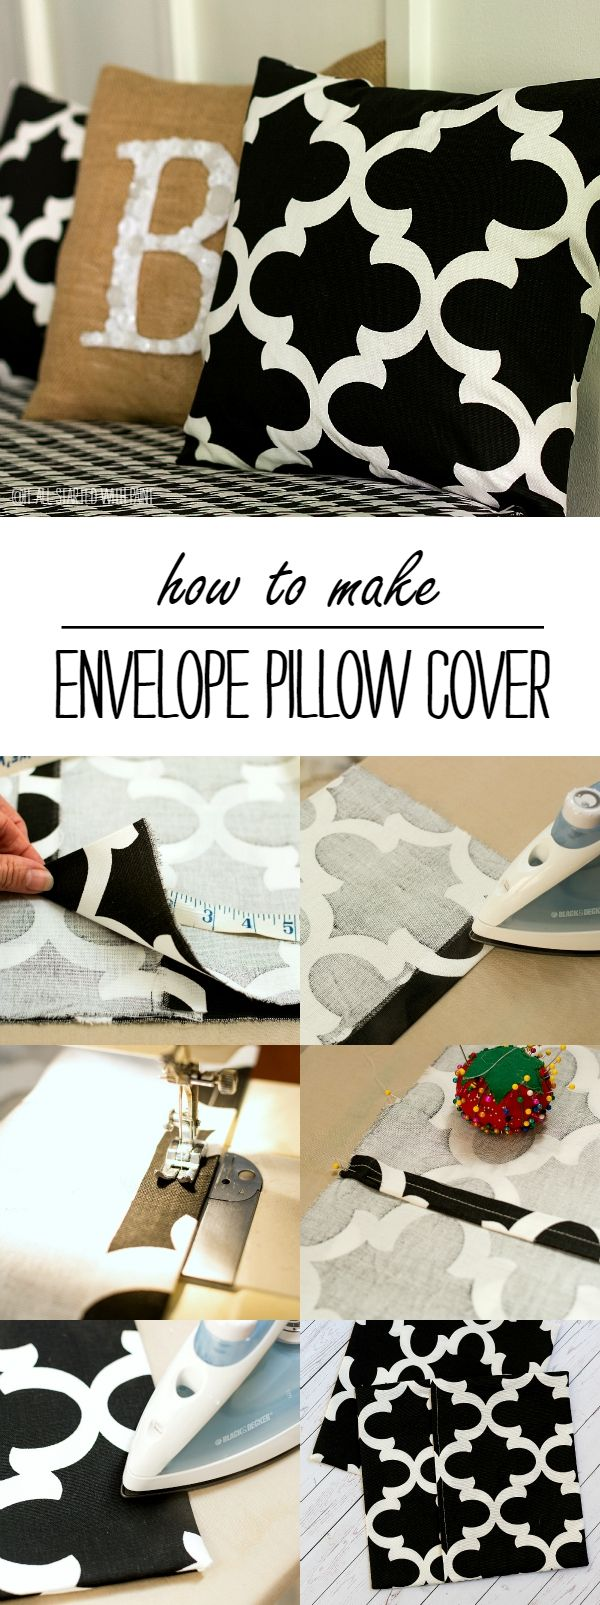 Envelope Pillow Cover How To - It All Started With Paint